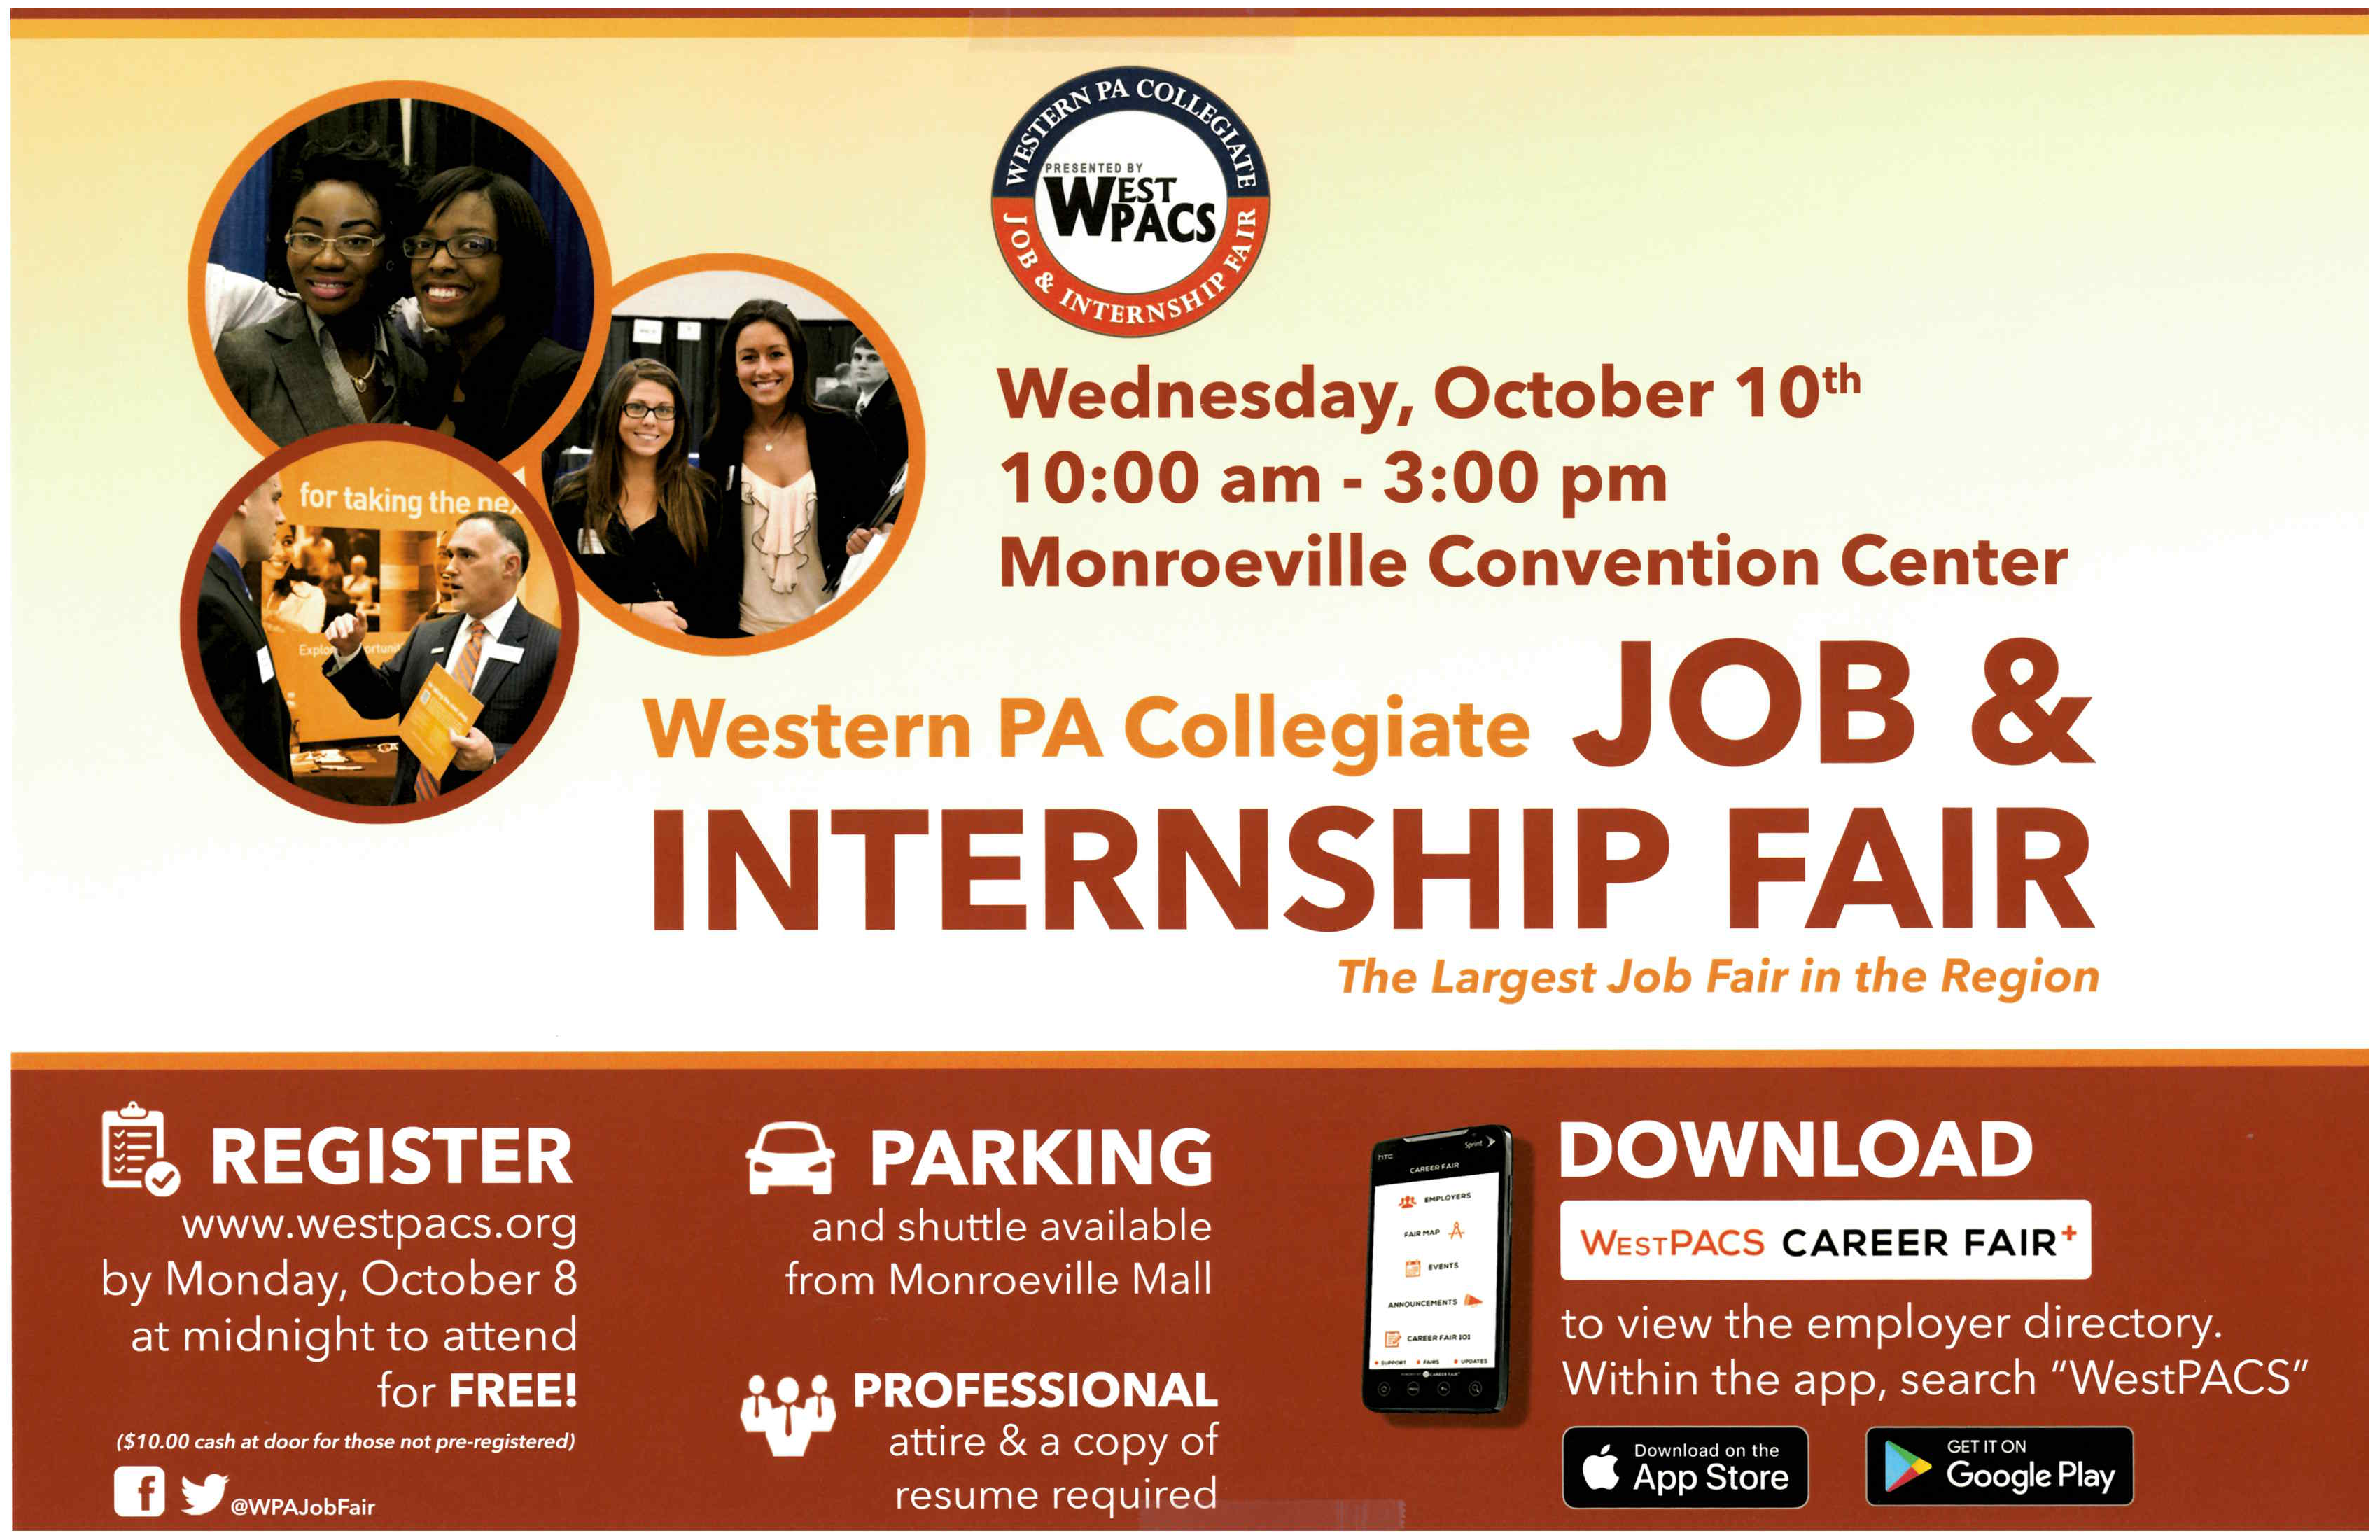 click to see full view of job and career fair